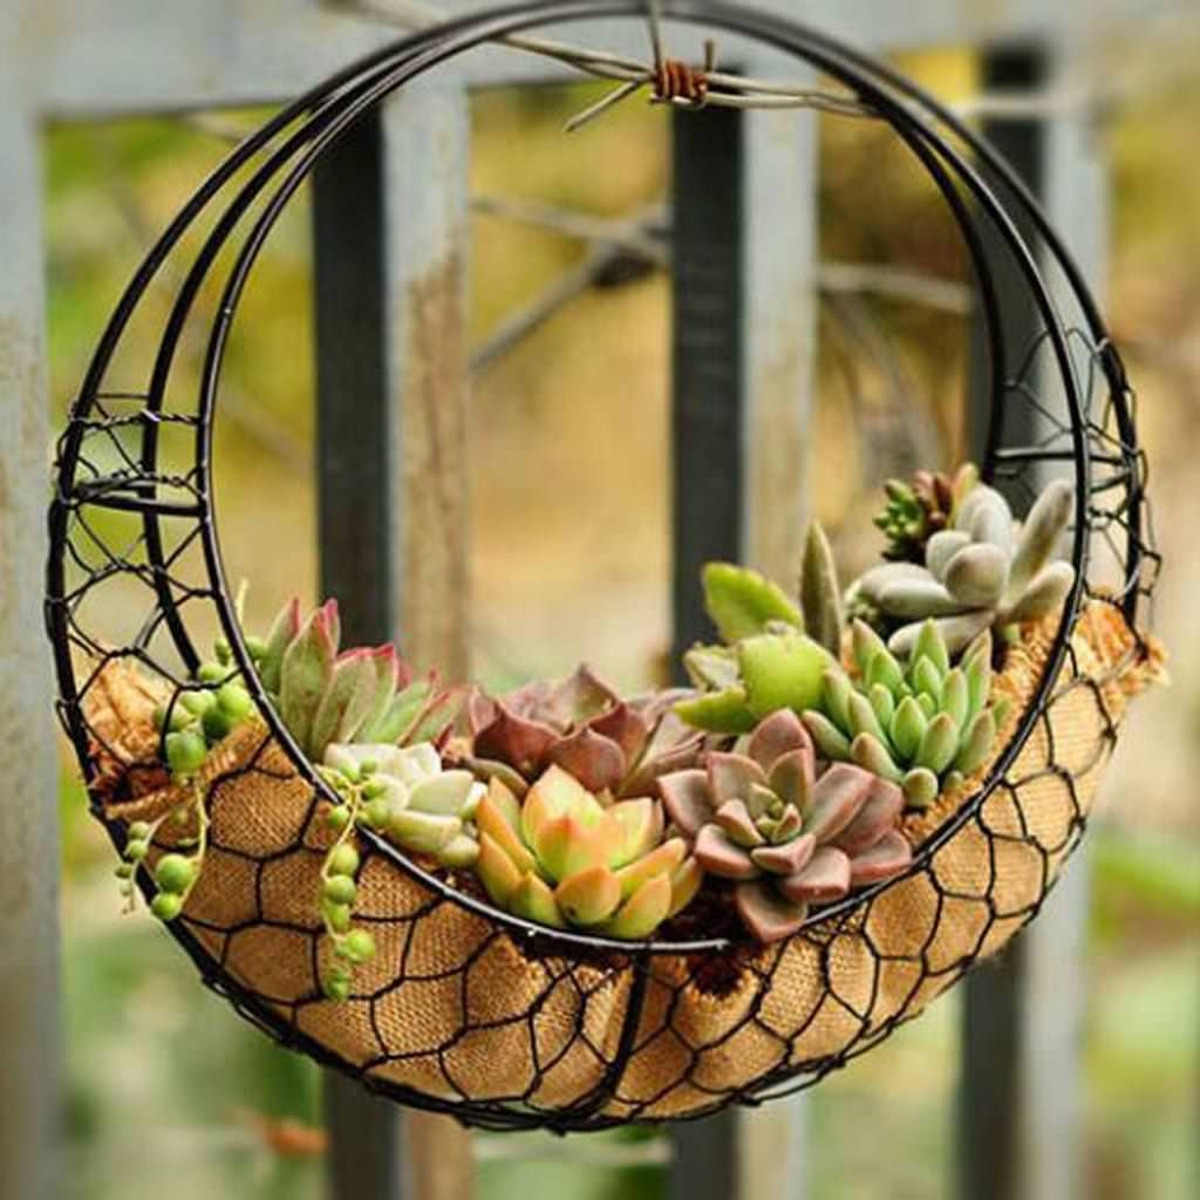 28cm Moon Shape Iron Wire Wreath Frame Metal Succulent Pot Hanging Basket Plant Flower Holder Wedding/ Home/Cafe/Party Decor